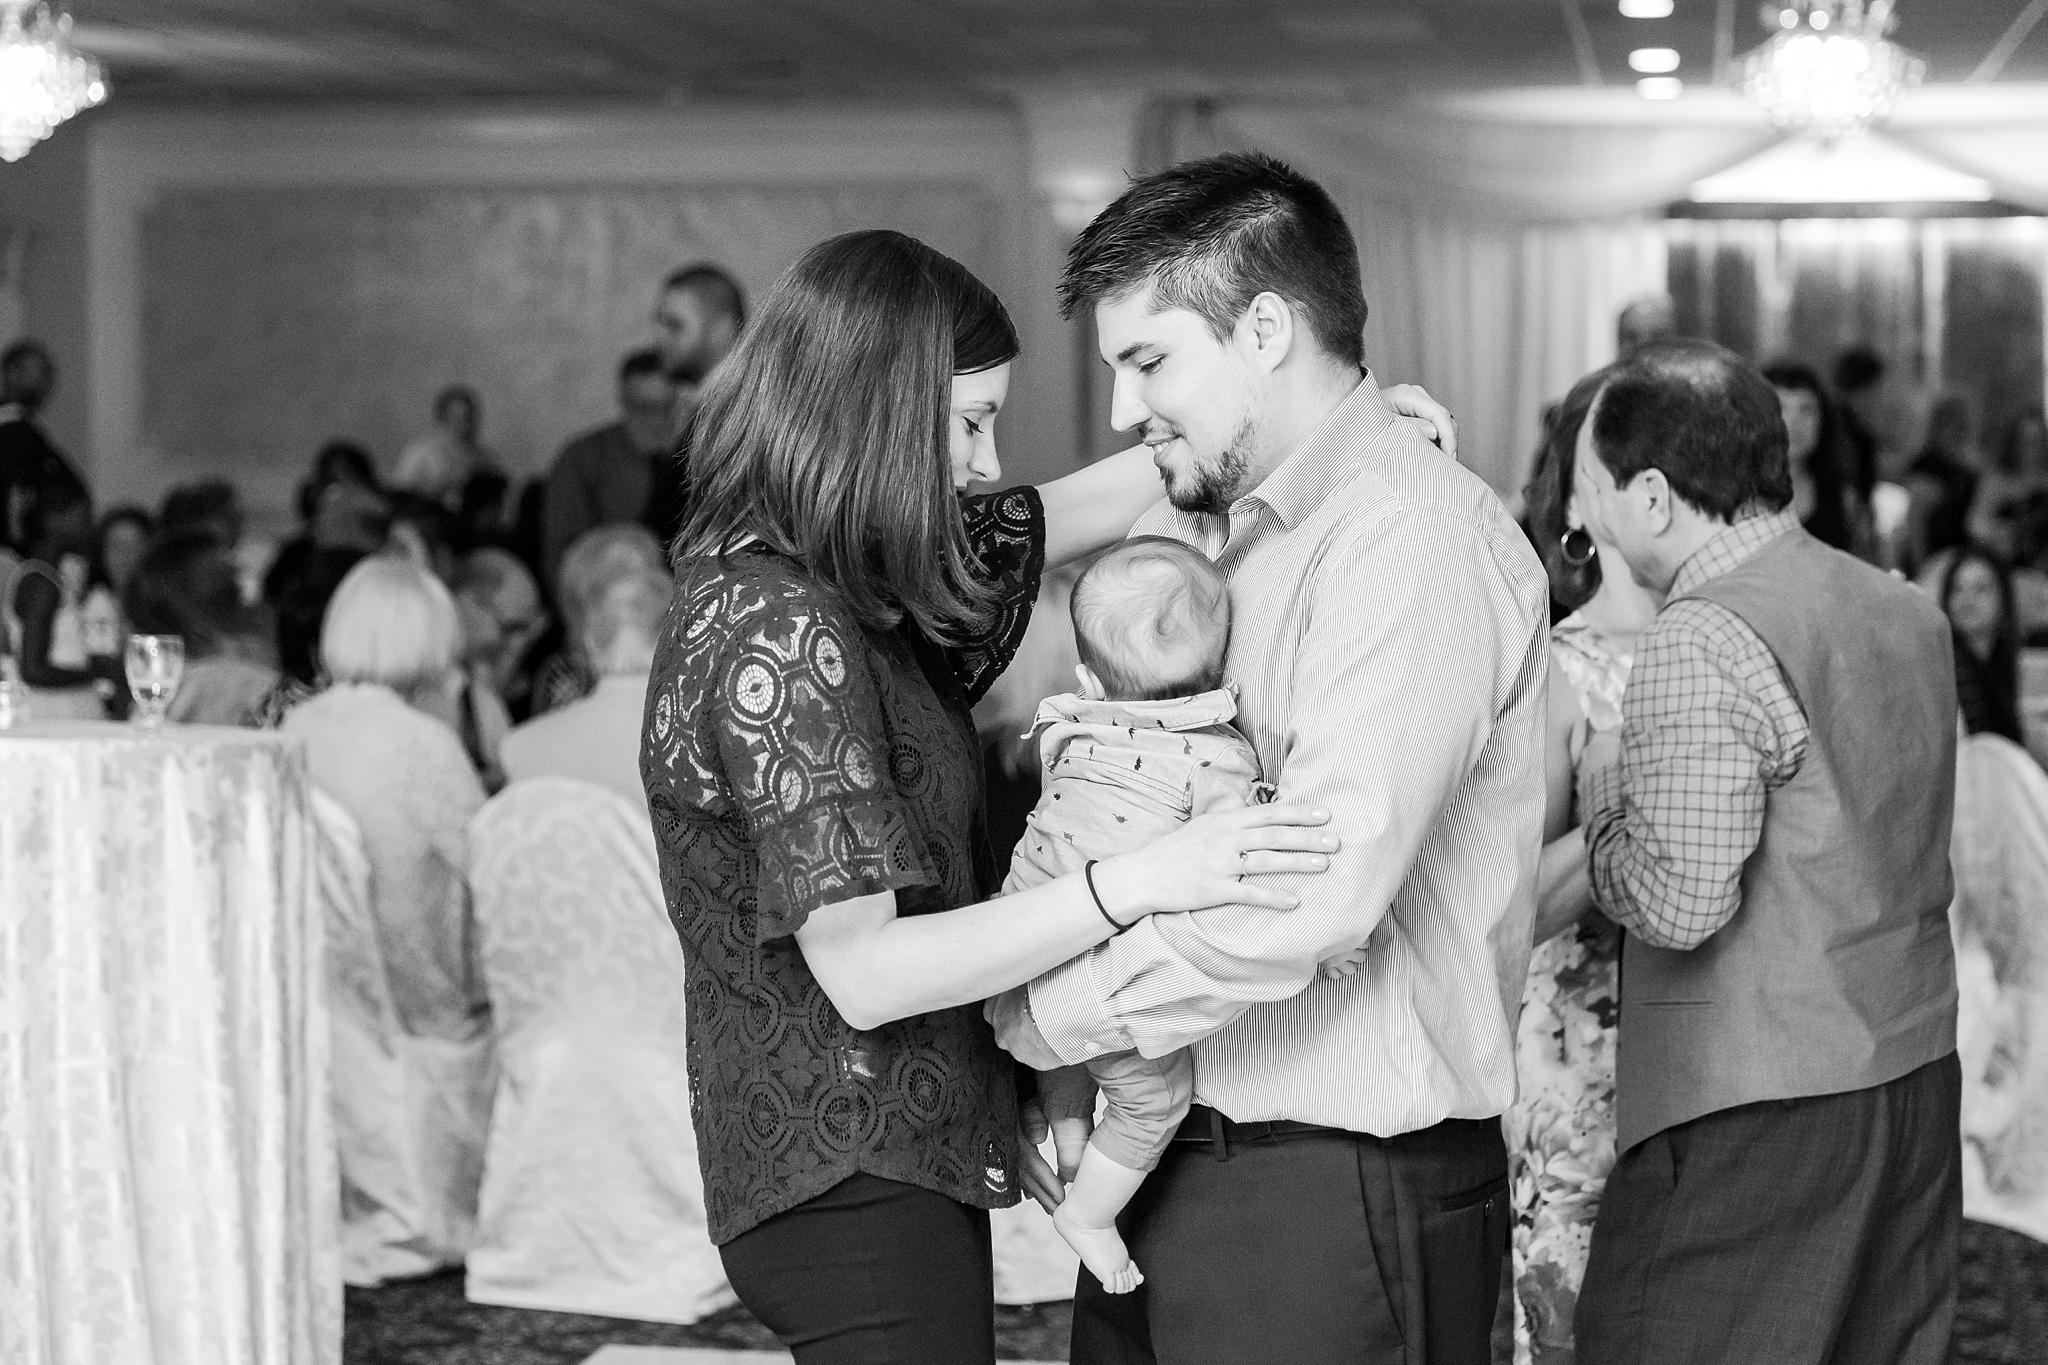 romantic-artful-candid-wedding-photos-in-st-clair-shores-at-the-white-house-wedding-chapel-by-courtney-carolyn-photography_0085.jpg